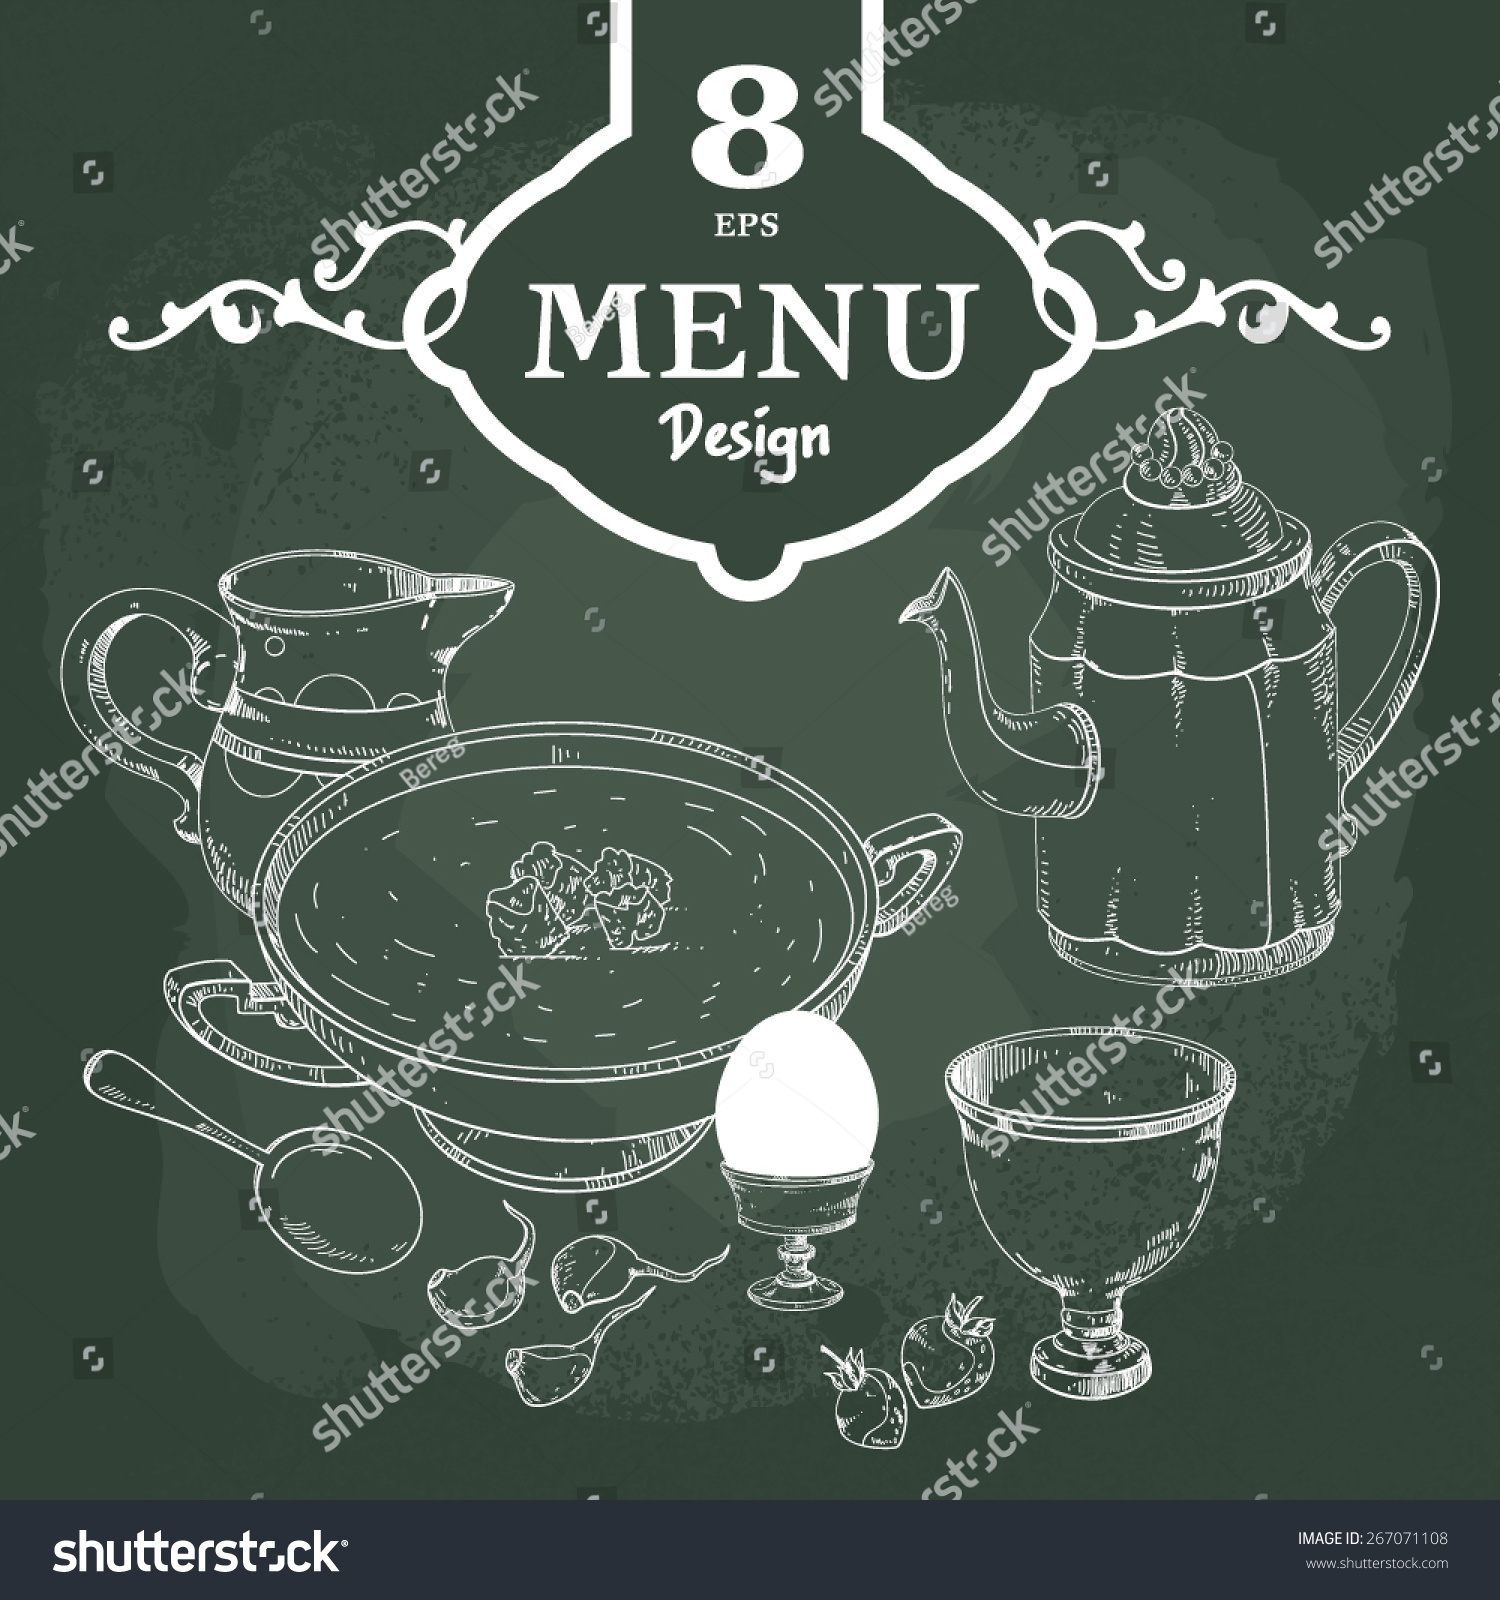 Hand drawn restaurant menu design elements stock vector